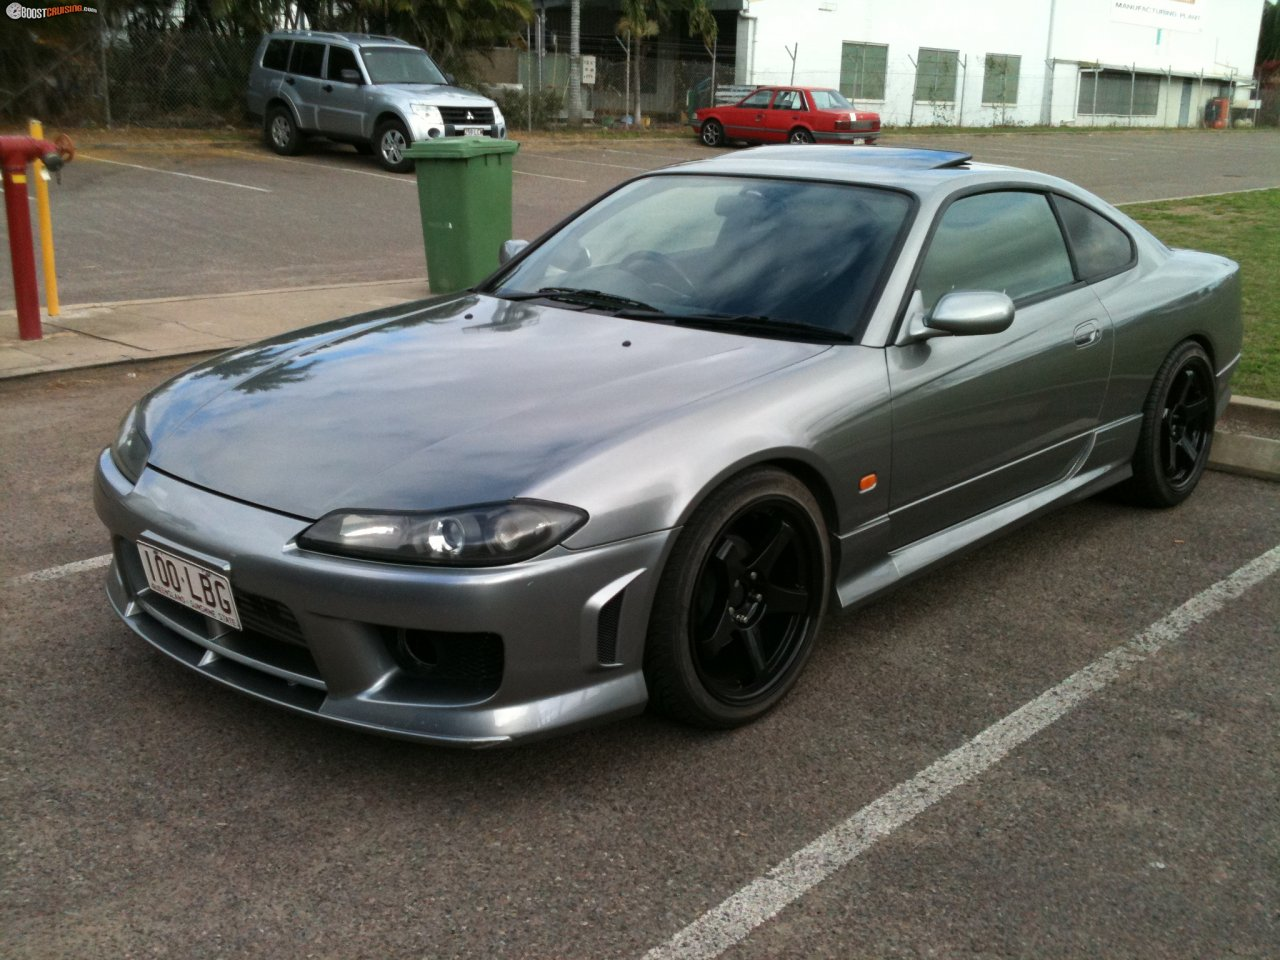 Nissan Silvia S14 For Sale In Usa nissan 200sx (s15) 2000 - Auto-Database.com